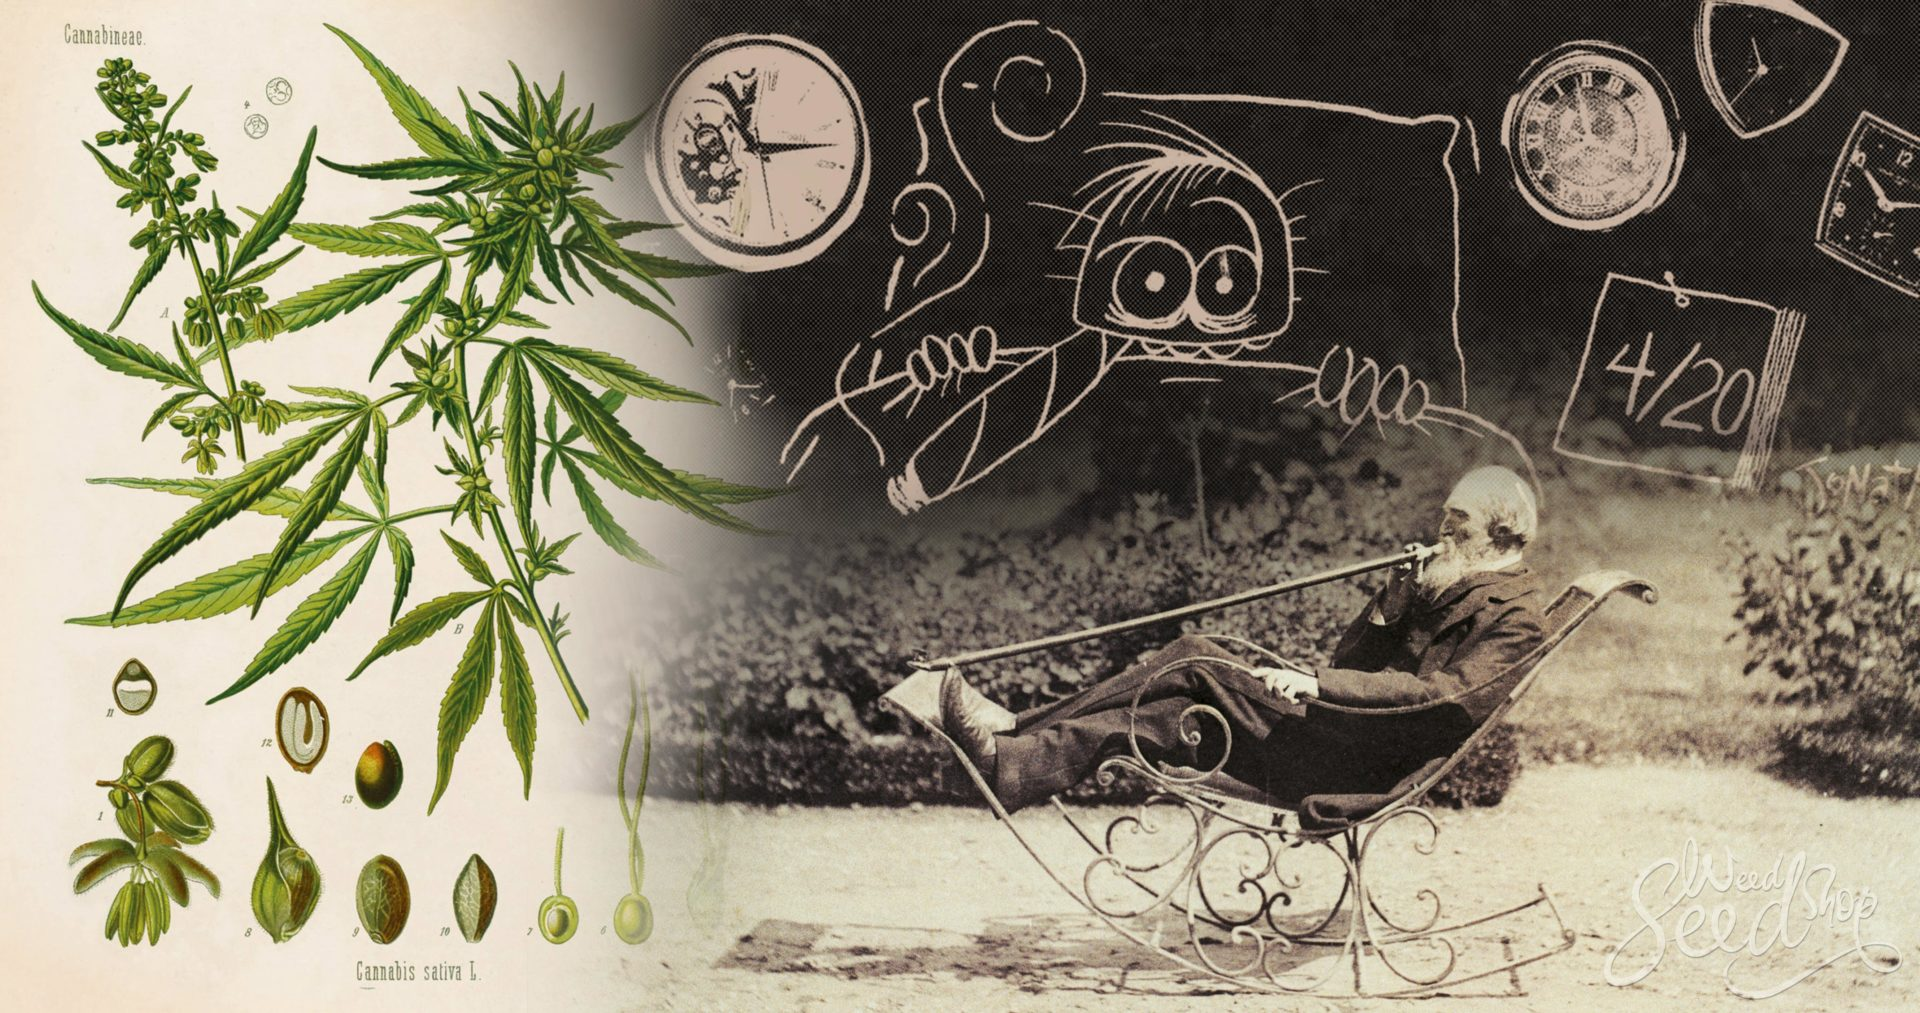 Secret History of Cannabis: 10 Facts You Didn't Know